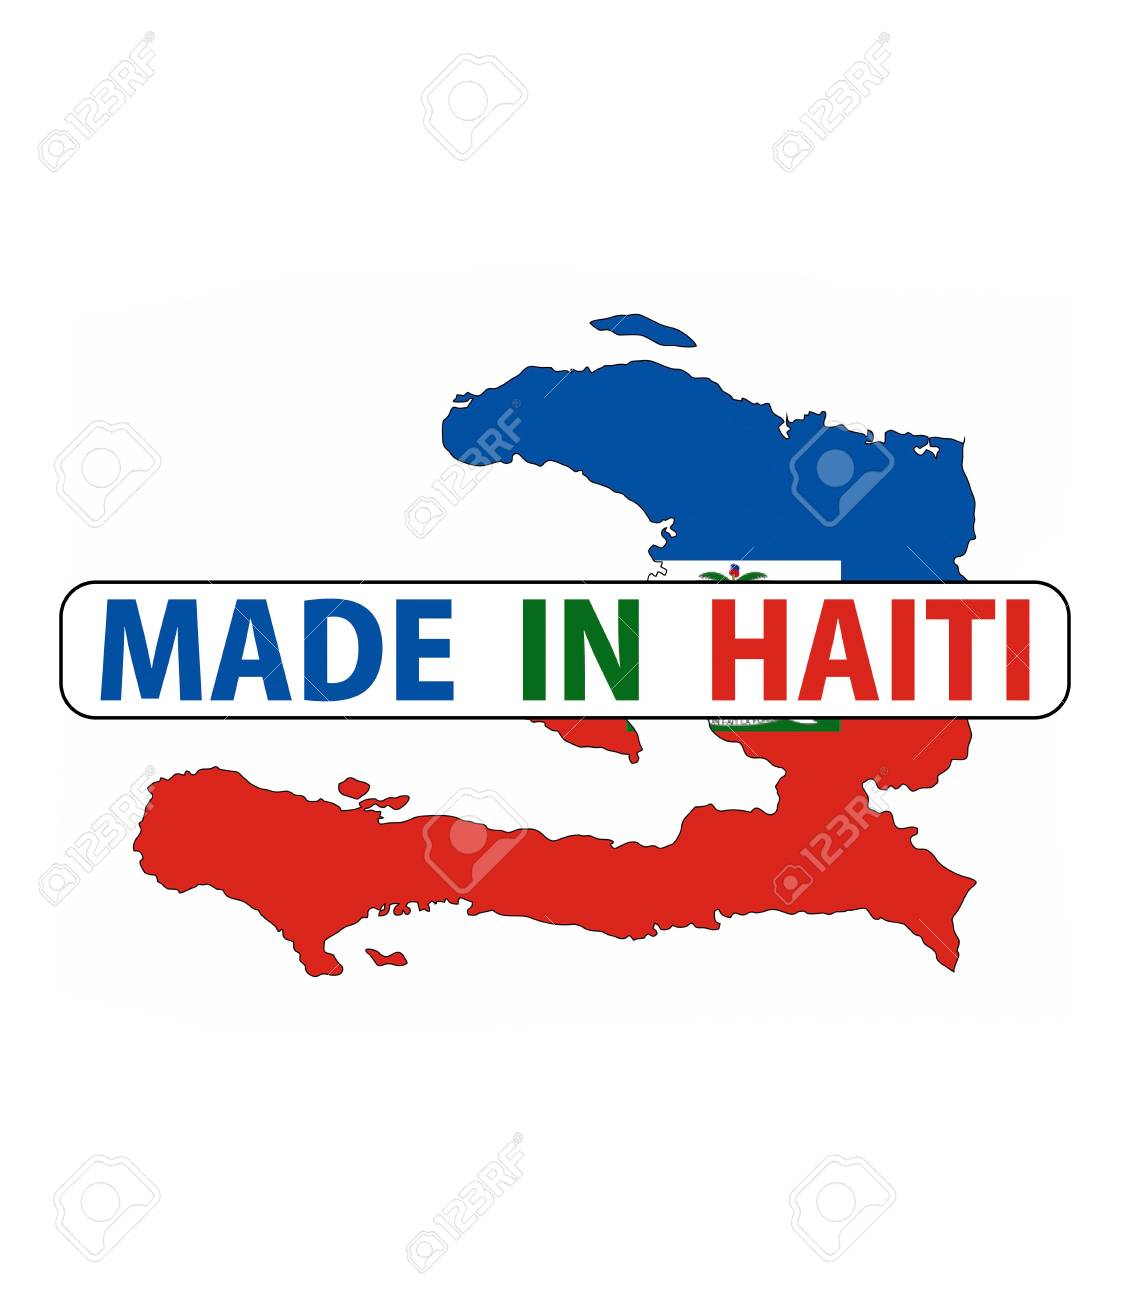 Made in haiti country national flag map shape with text stock photo made in haiti country national flag map shape with text stock photo 46570441 gumiabroncs Gallery